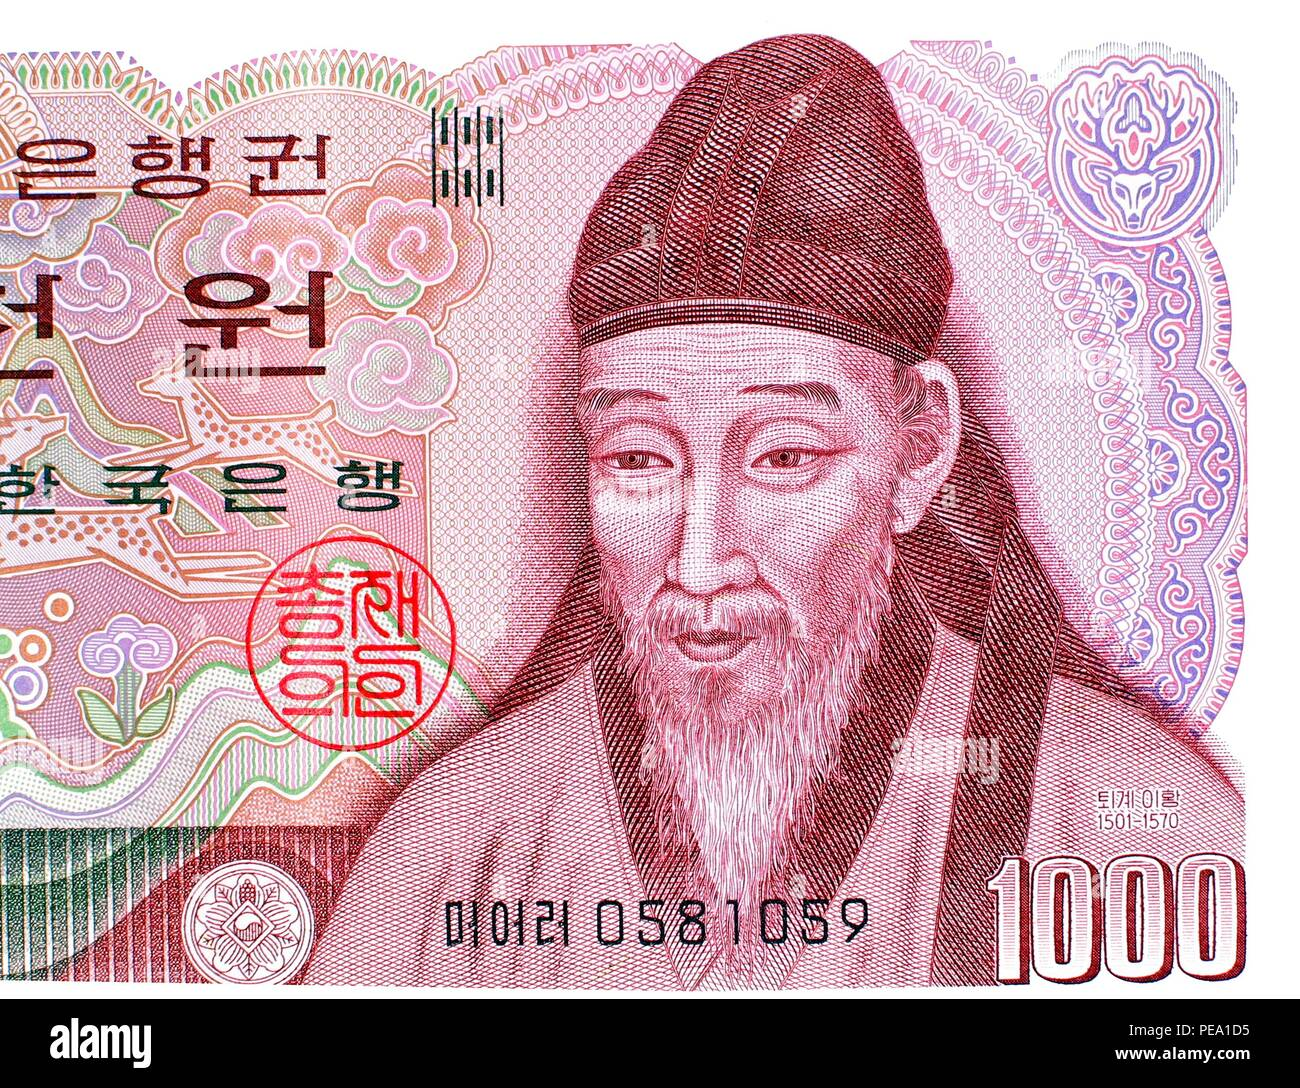 Detail on the South Korean 1000 Won banknote showing the portrait of the16th century Korean Confucian scholar Yi Hwang - Stock Image